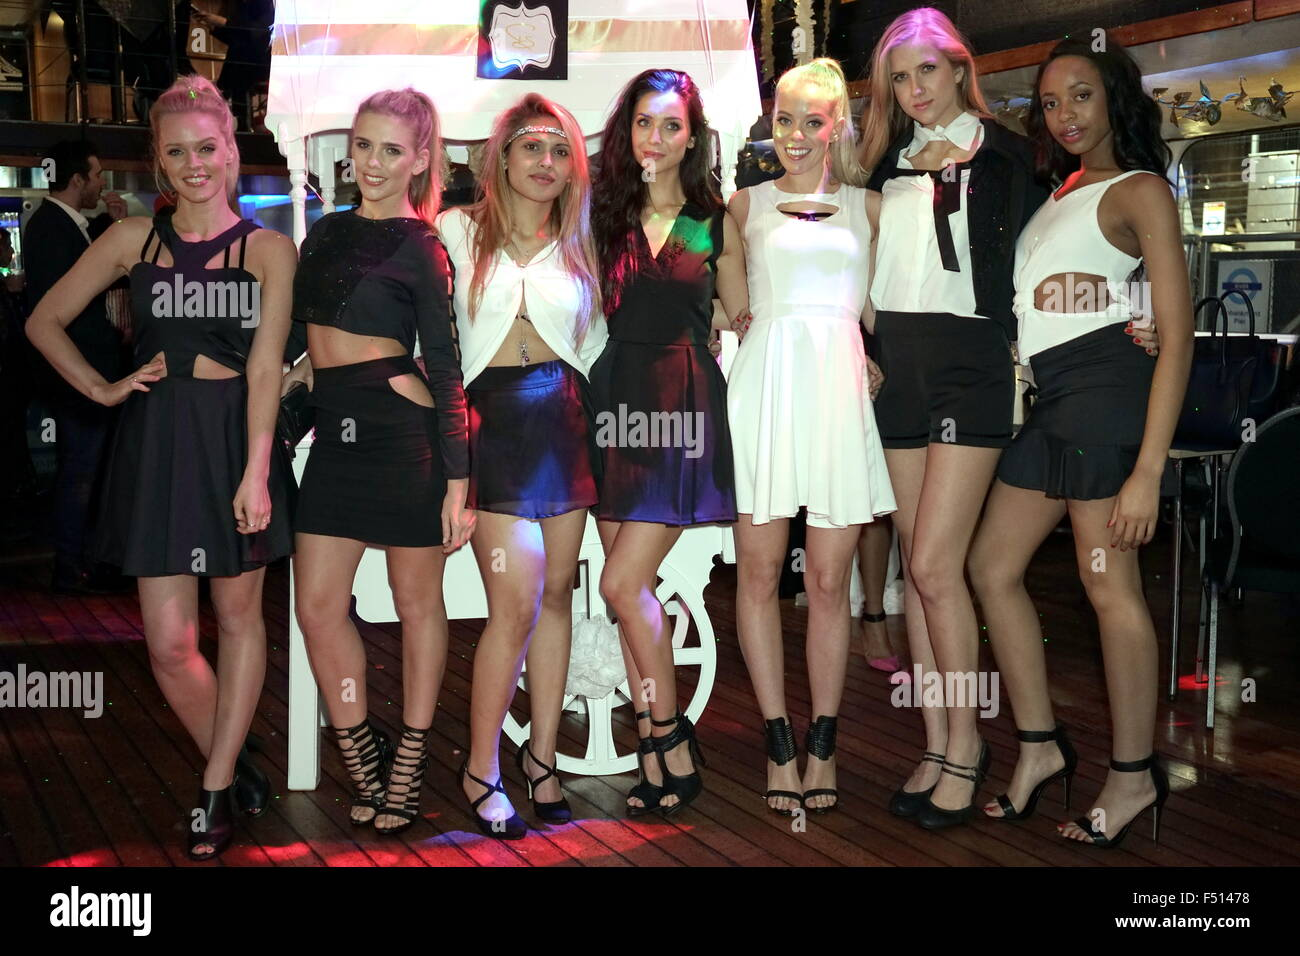 London, England, 25th Oct 2015 : Fay Shafai (L3) and her models with latest London Collection display at the launch - Stock Image